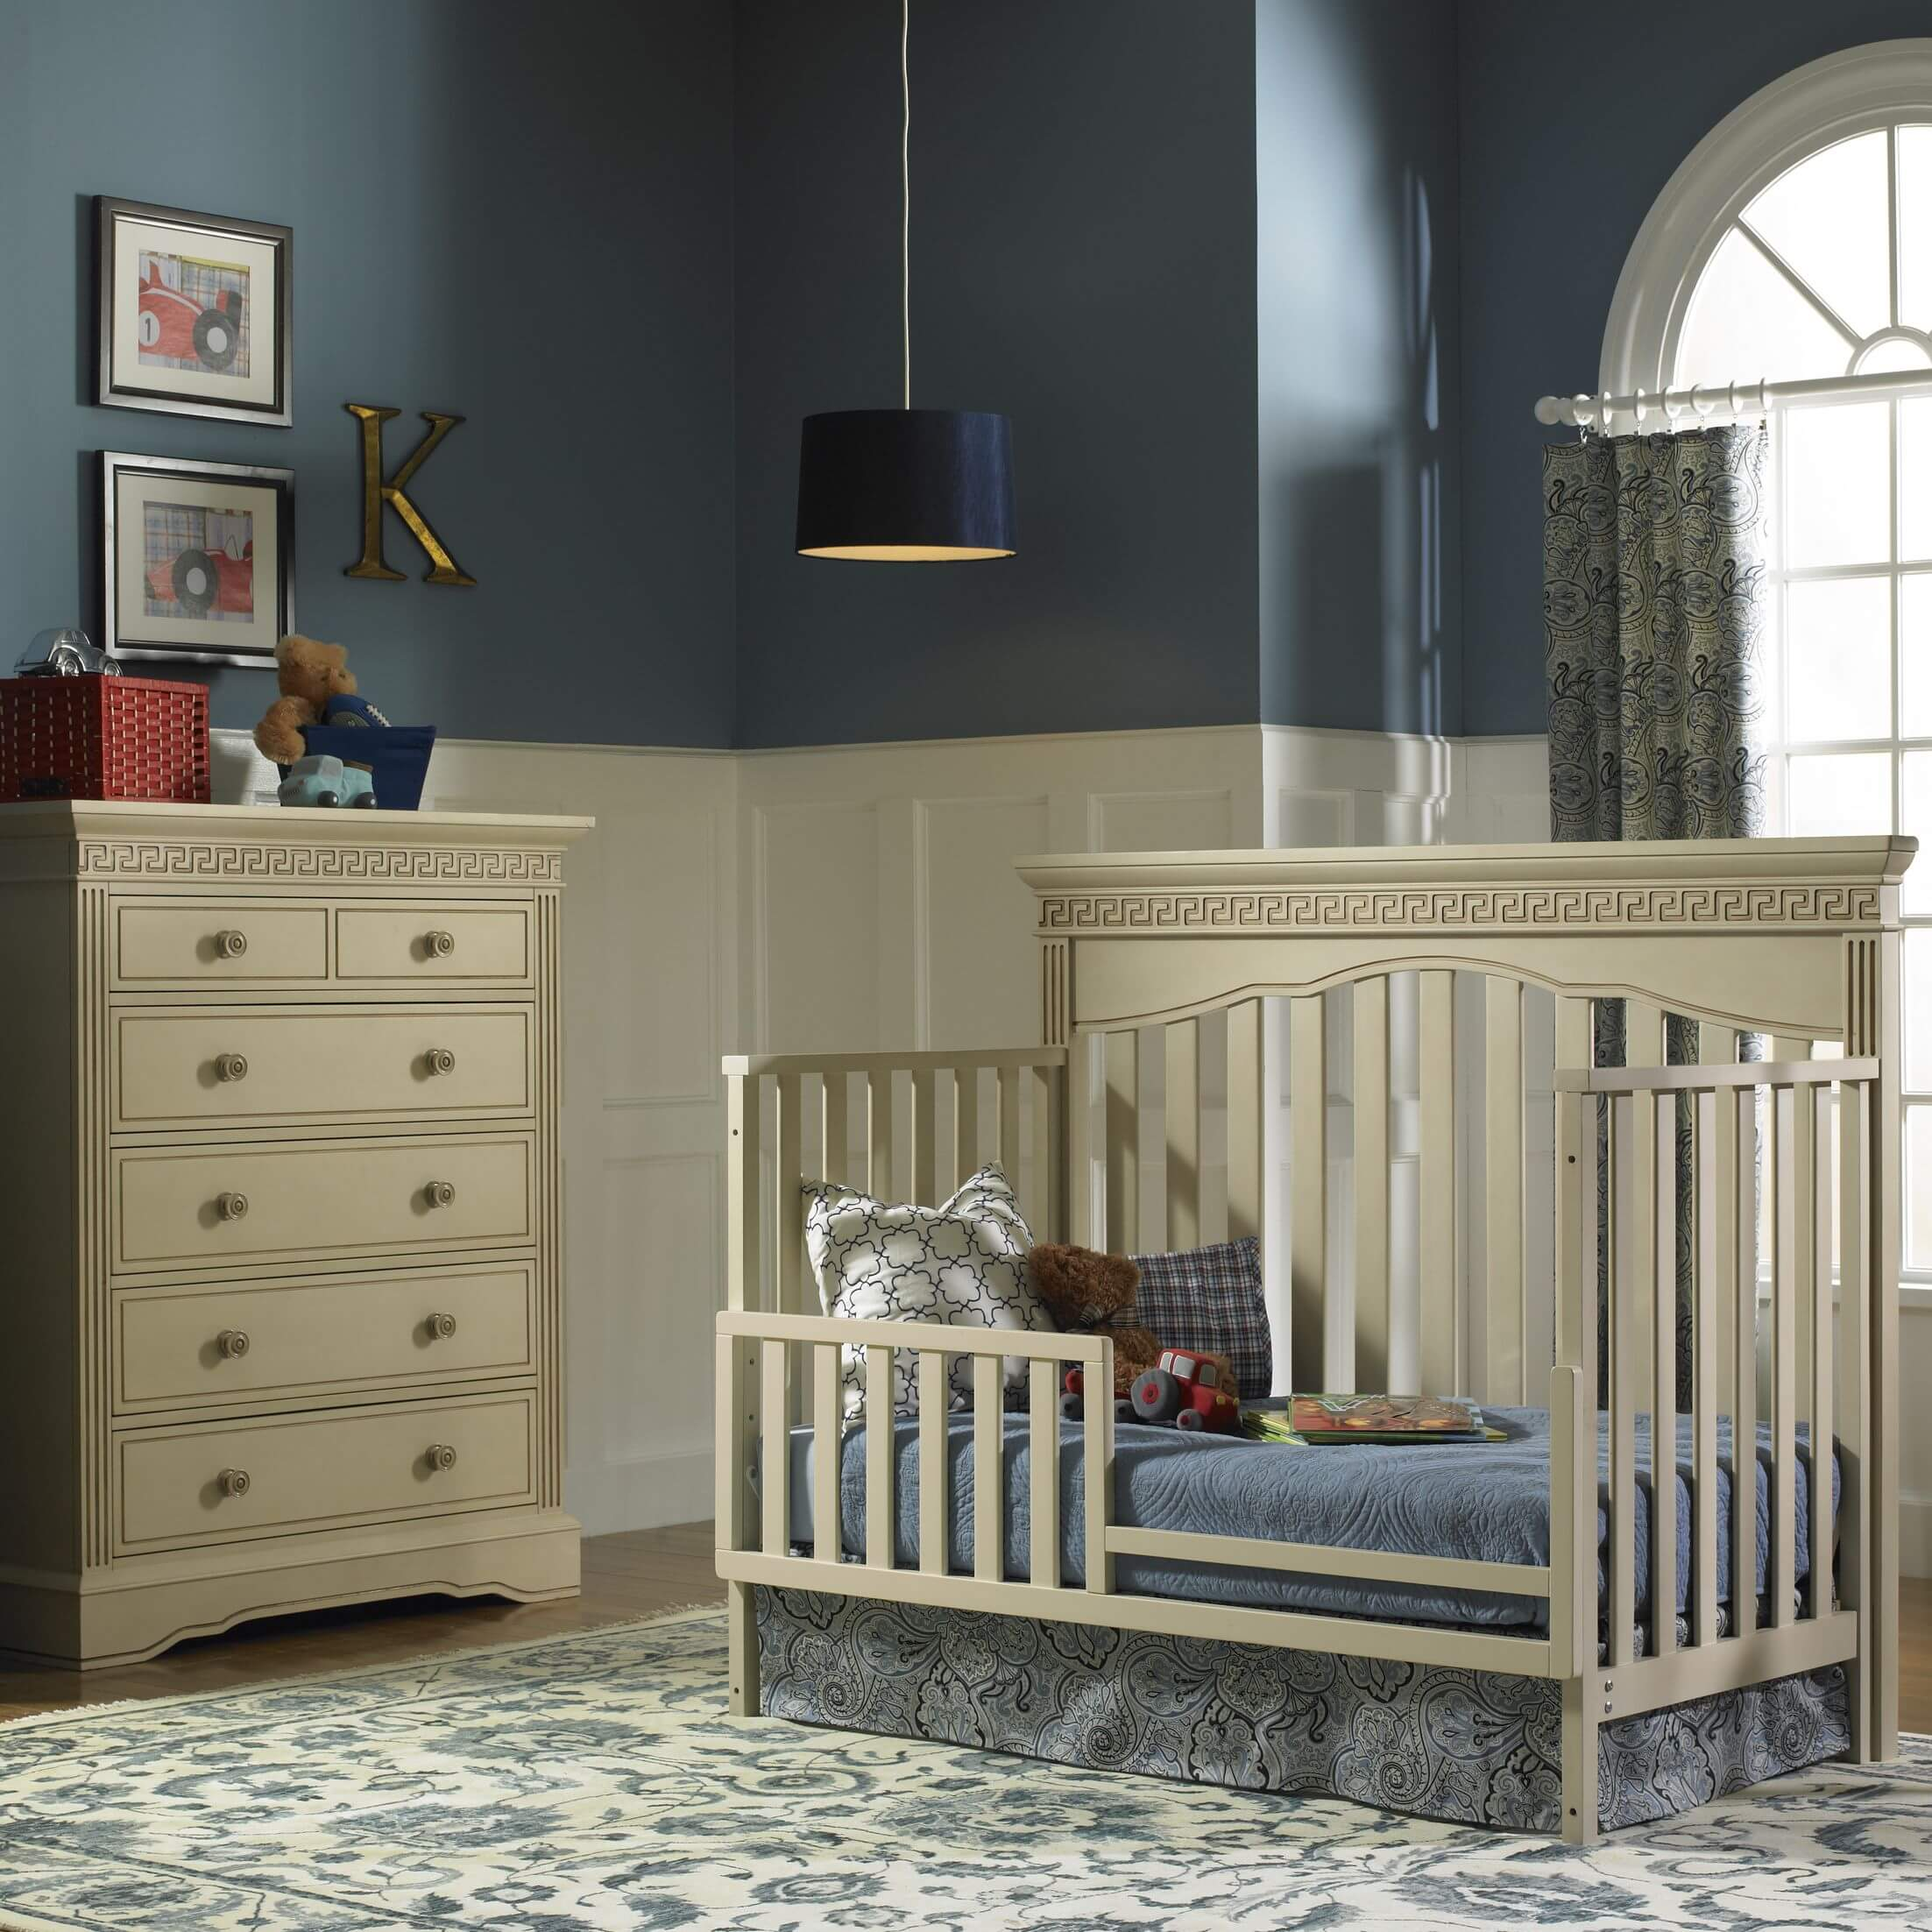 Baby cribs with matching dresser - Baby Cribs With Matching Dresser 7